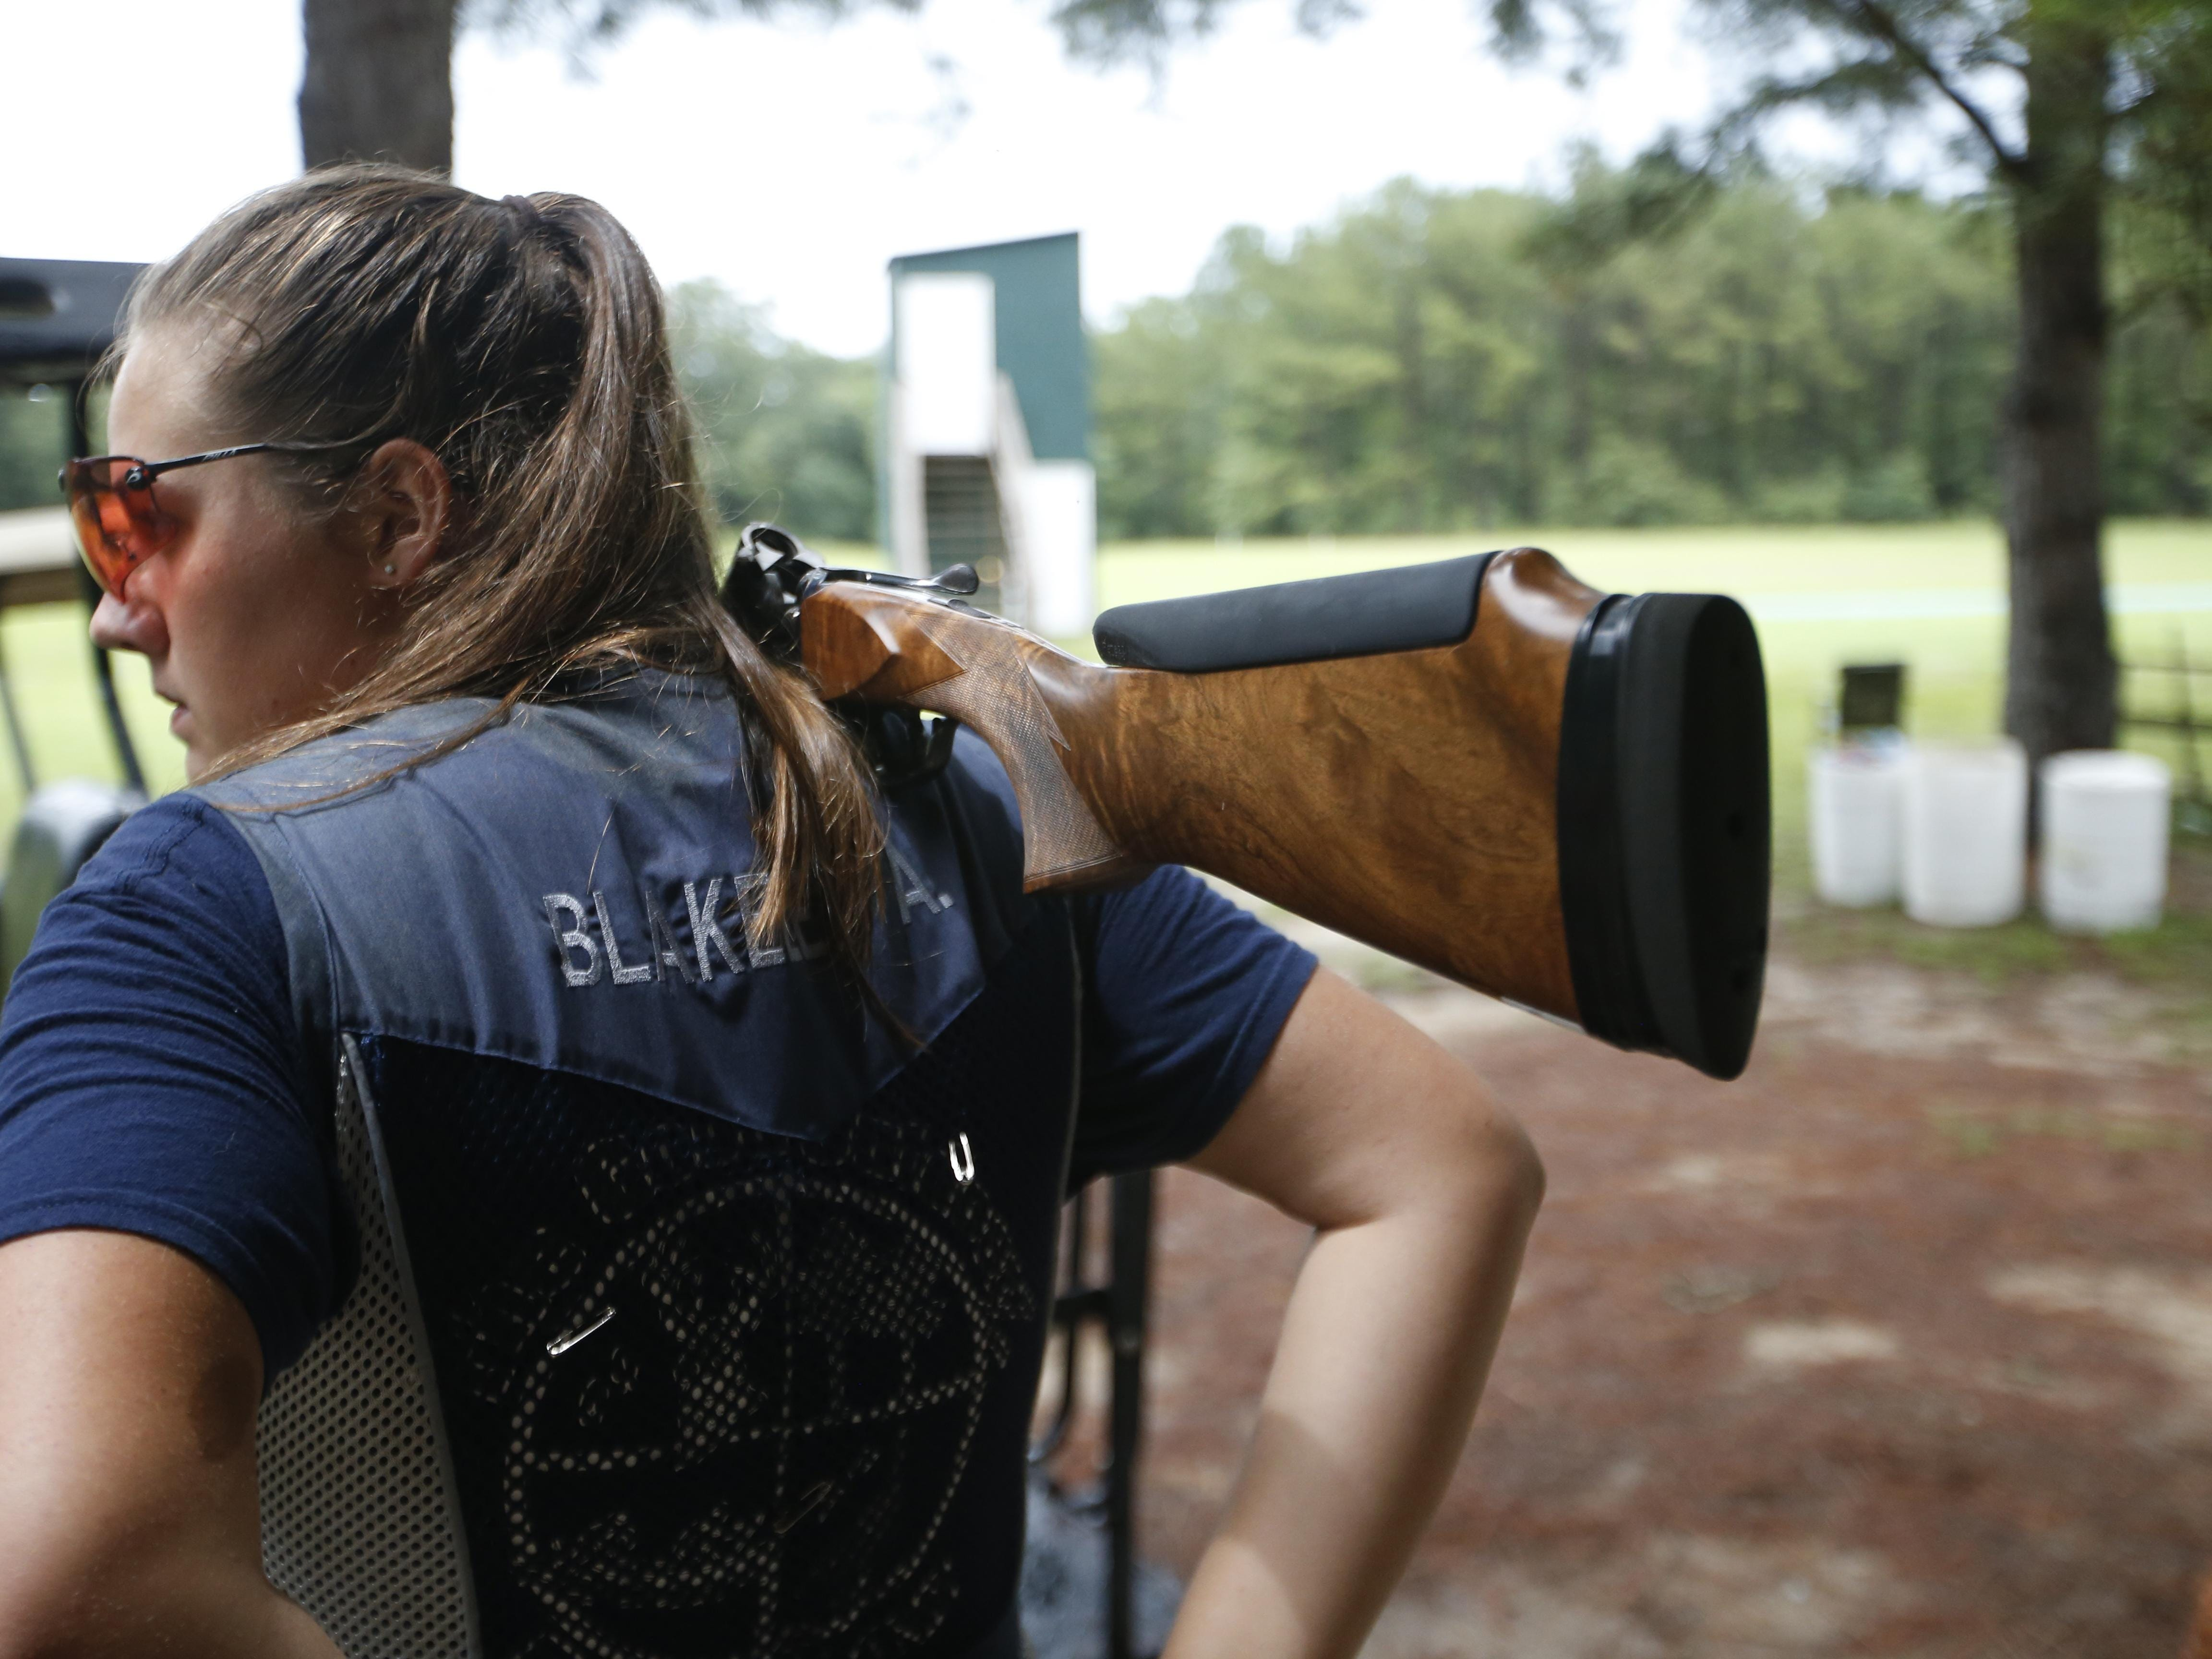 Abby Blakeley steps out on the clay pigeon shooting range at the Bridge Creek Clays South Georgia Youth Shooting Club on Tuesday, June 30, 2015.